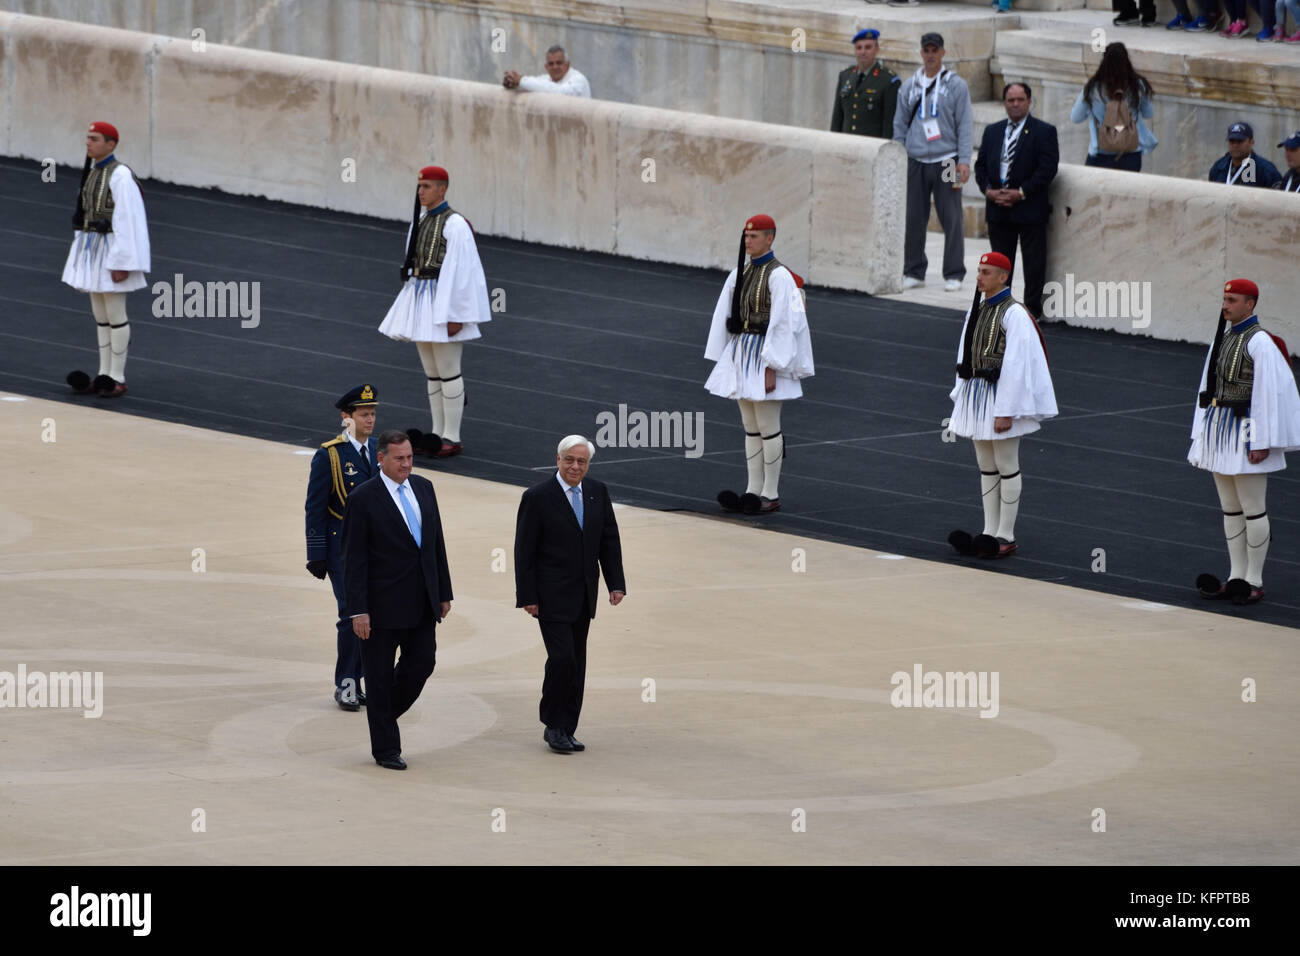 Athens, Greece, 31st October, 2017. The president of the Hellenic Republic Prokopis Pavlopoulos (R) arrives at the - Stock Image